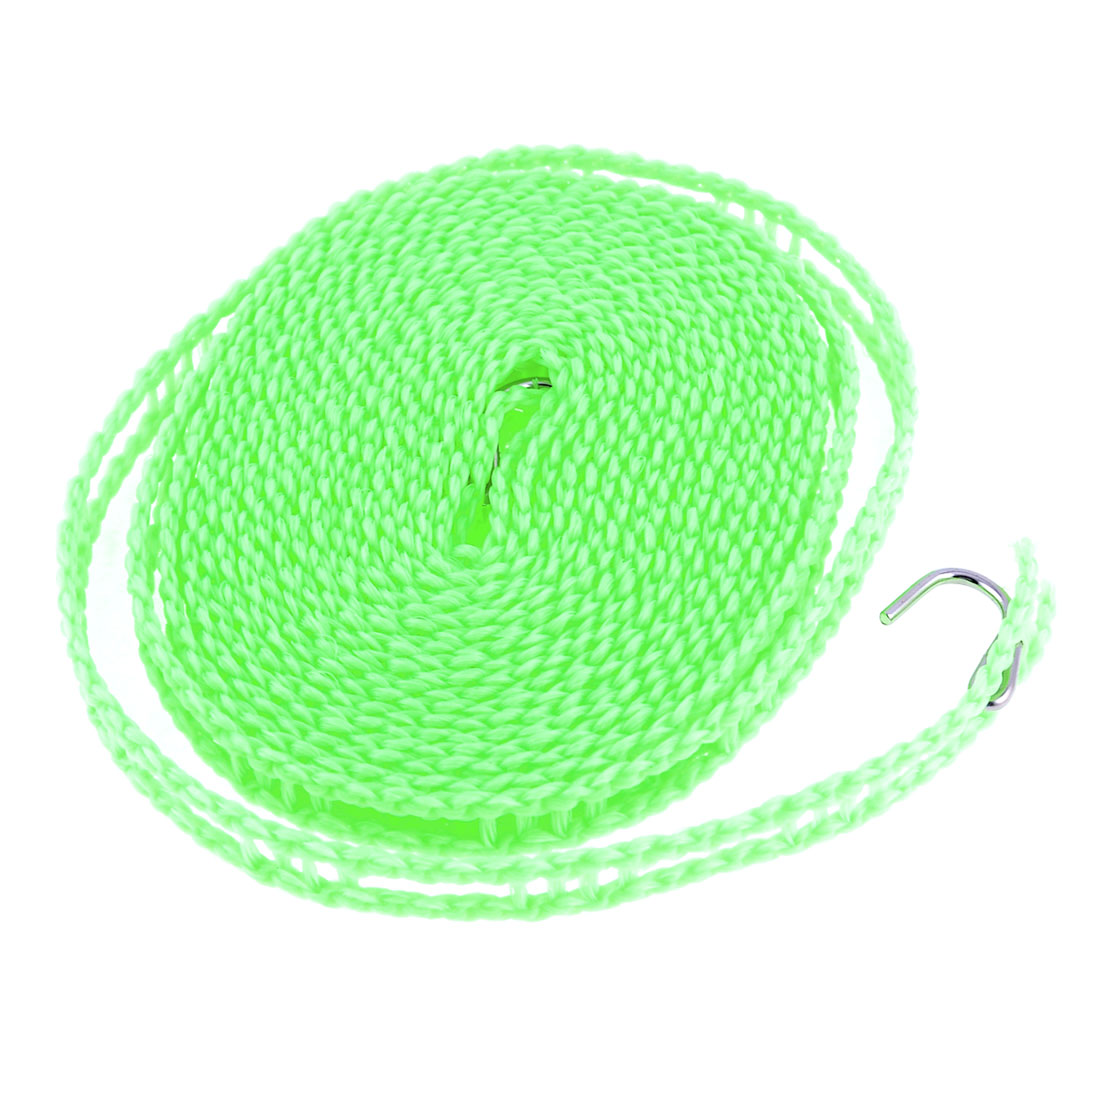 Outdoor 5M Nylon Clothesline Windproof Rope String Washing Line Green